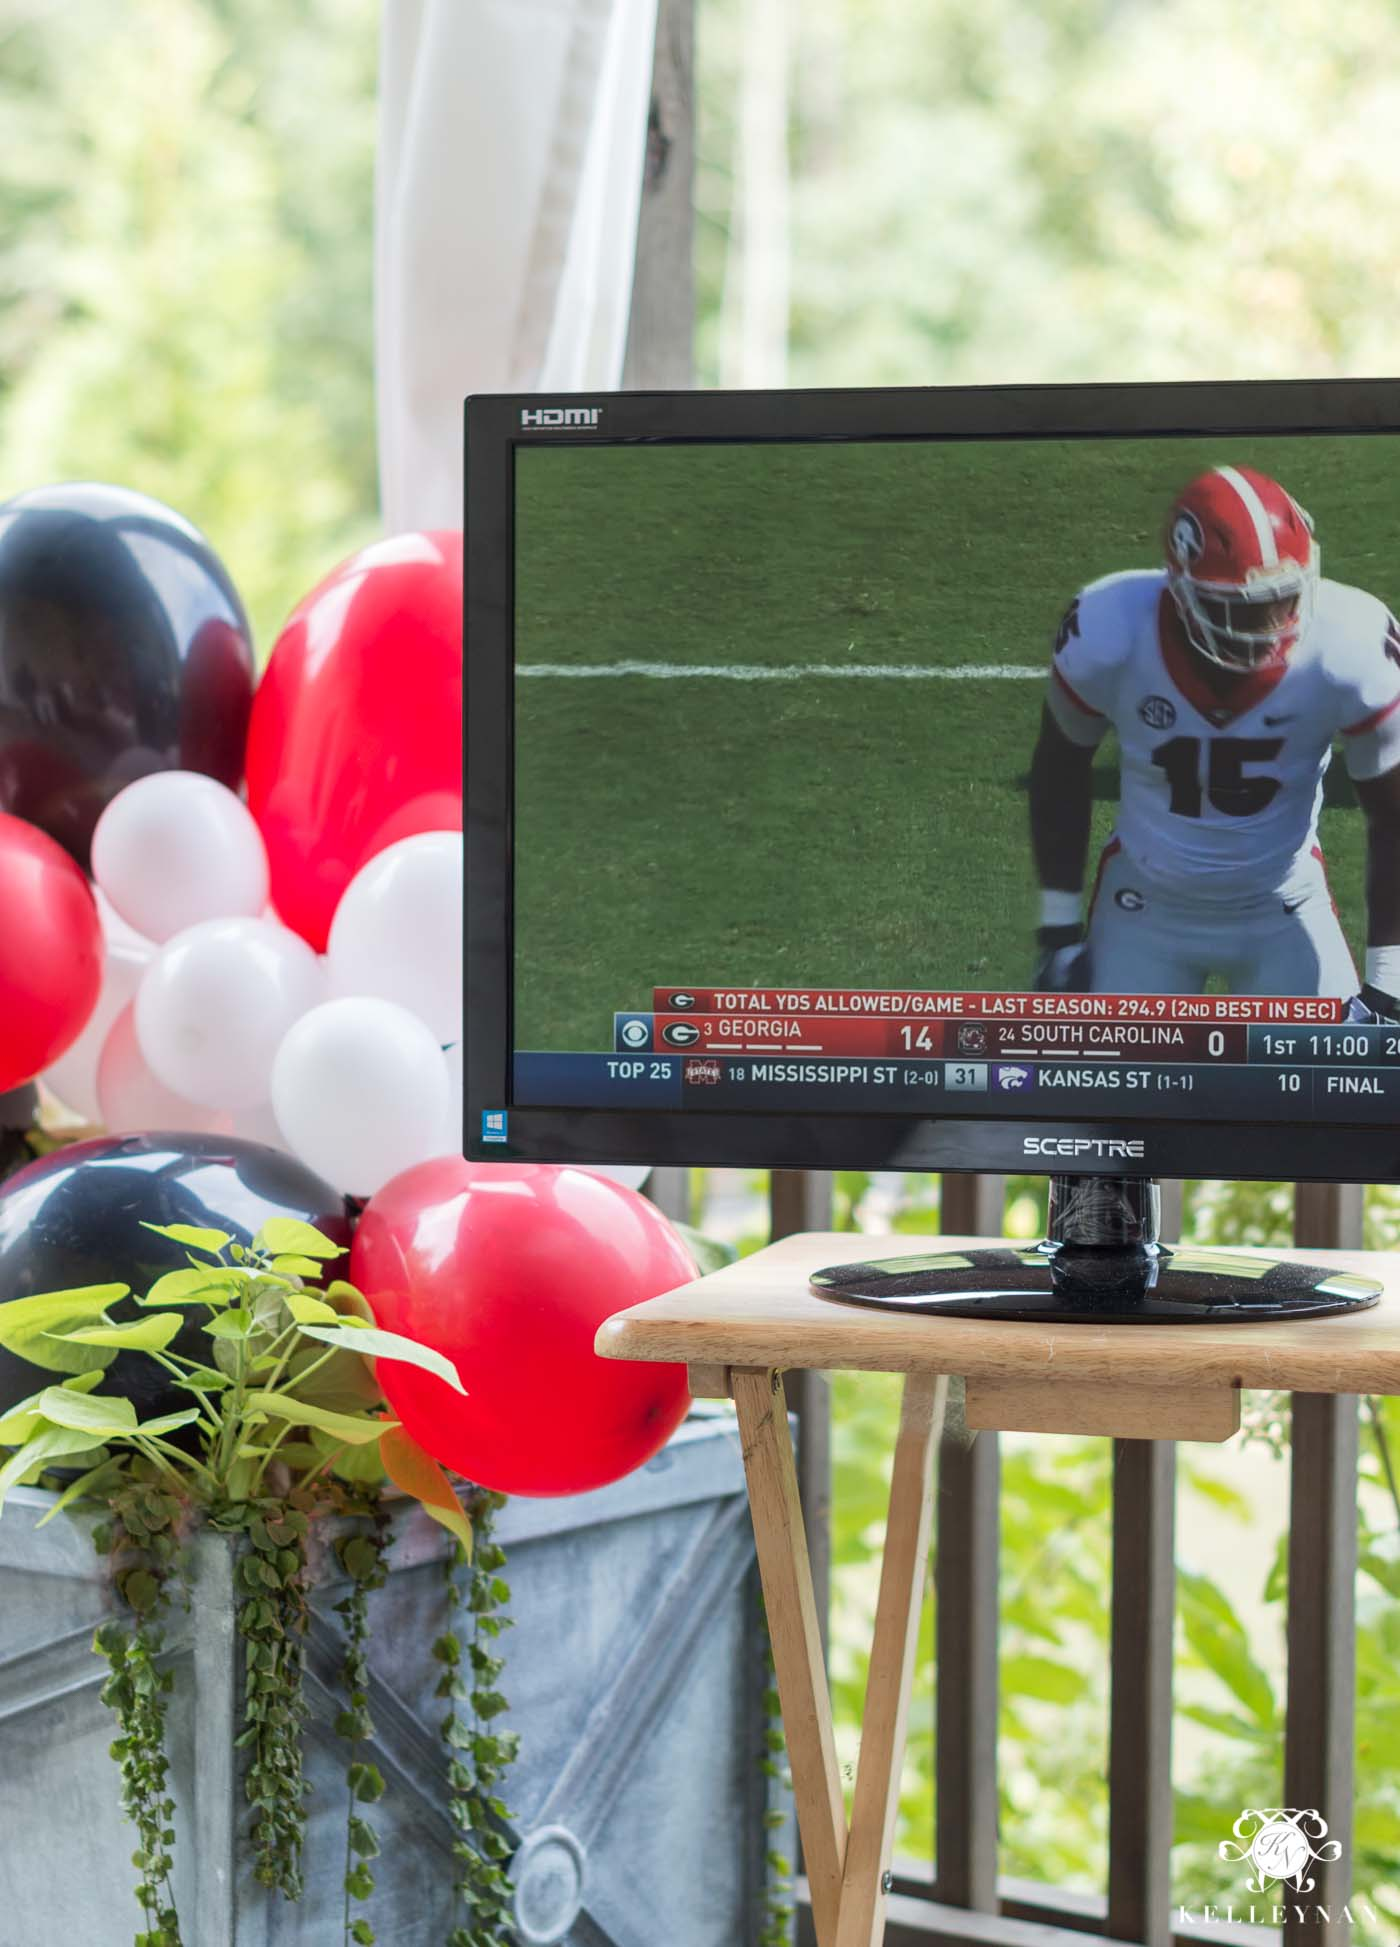 How to watch football outdoors